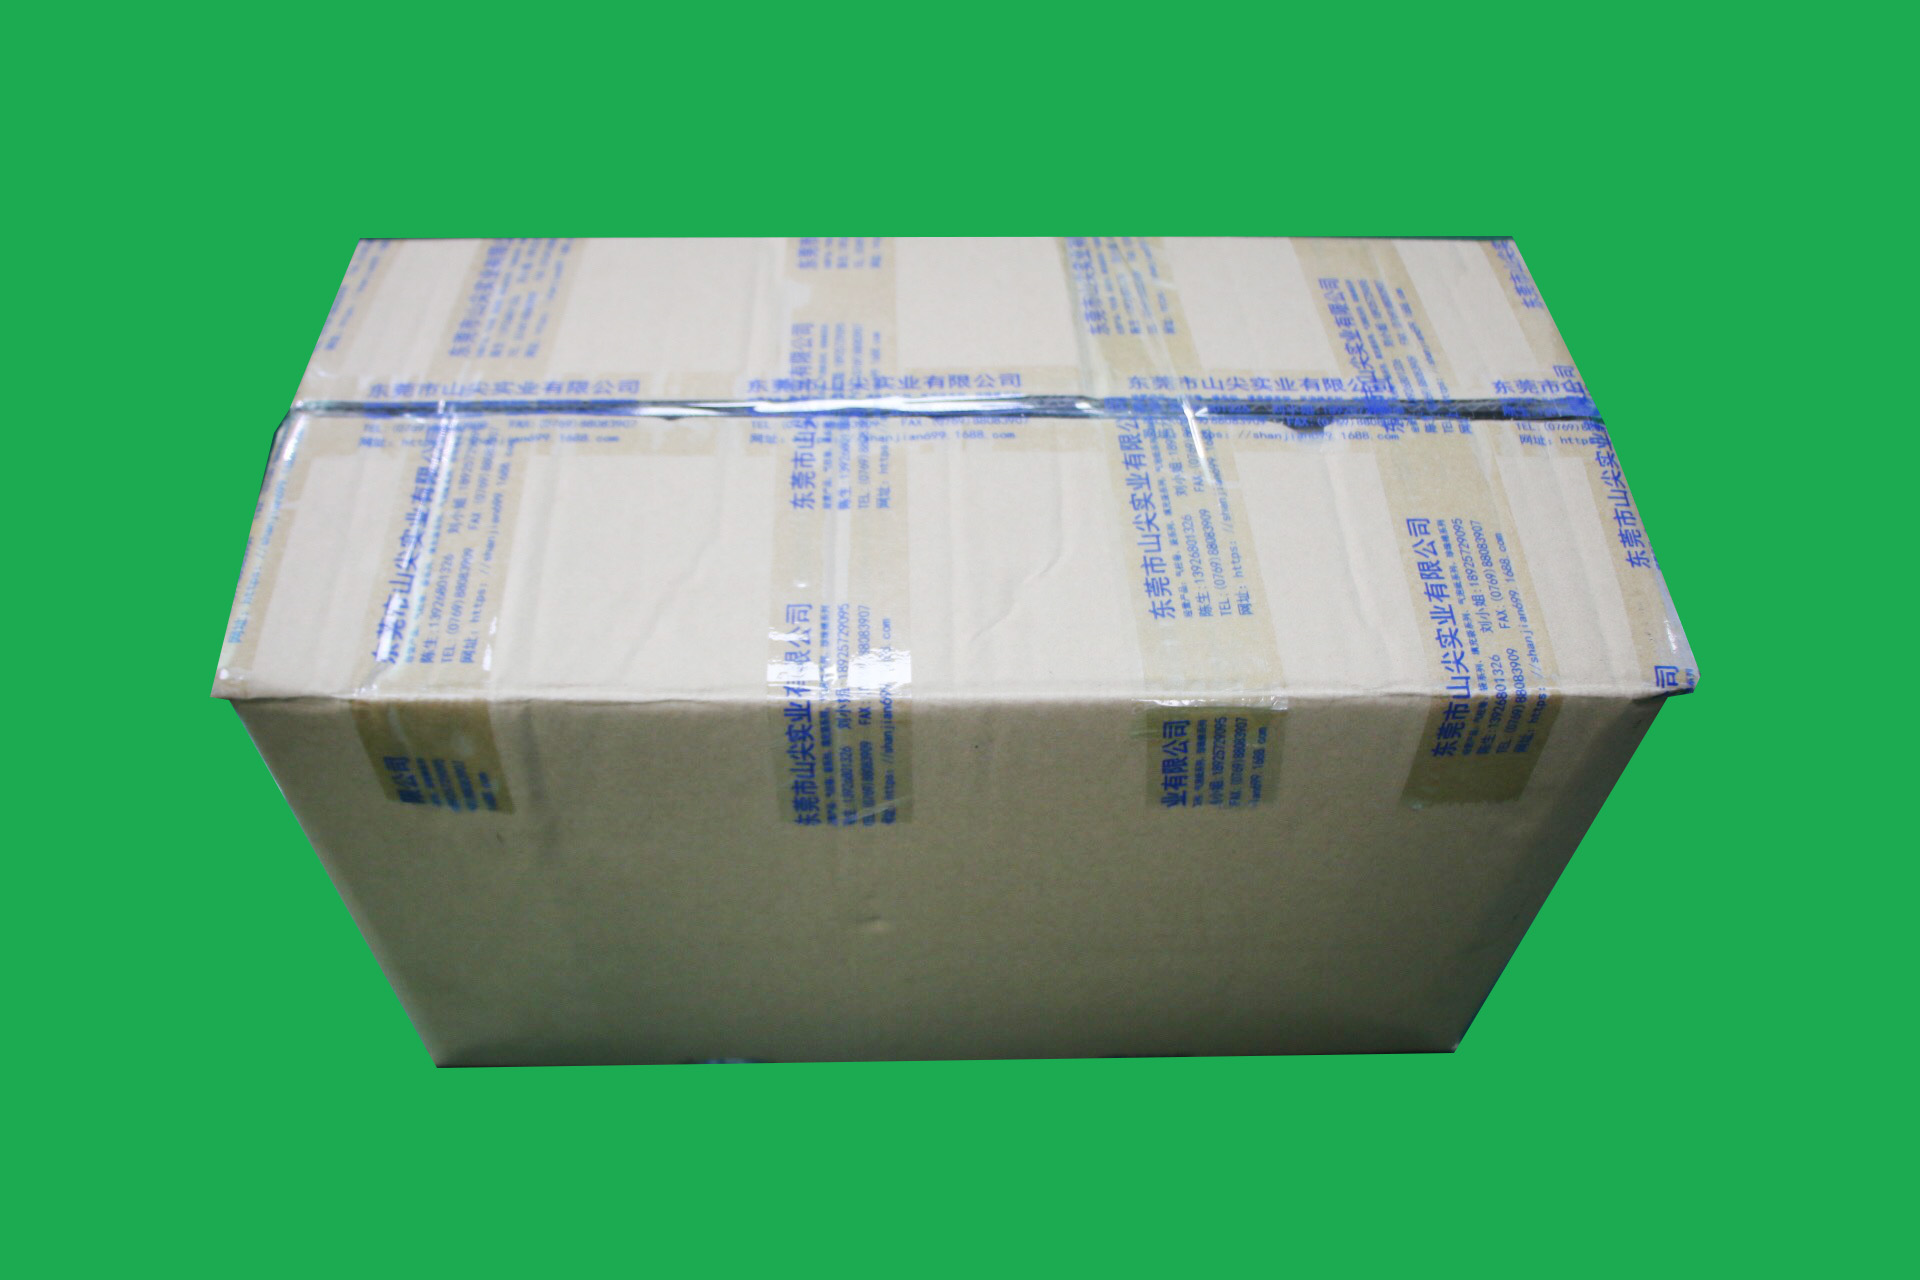 Sunshinepack Top dunnage air bags manufacturer Suppliers for transportation-6